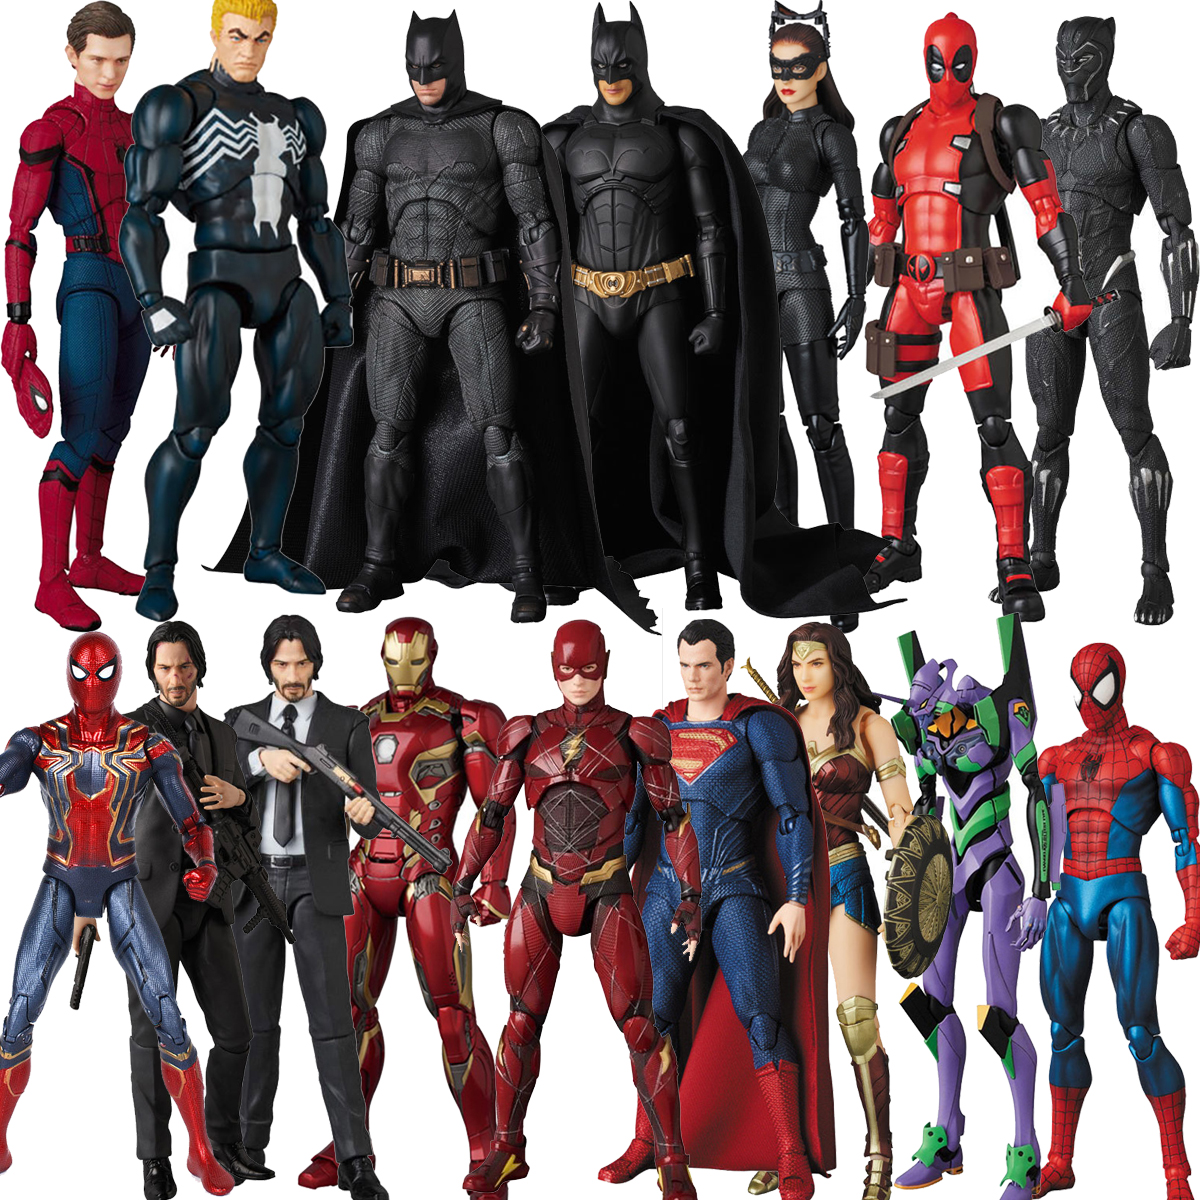 Mafex John Wick Black Panther Spiderman Deapool  Venom Superman Wonder Woman Flash Aquaman Iron Spider Man Batman  Action Figure